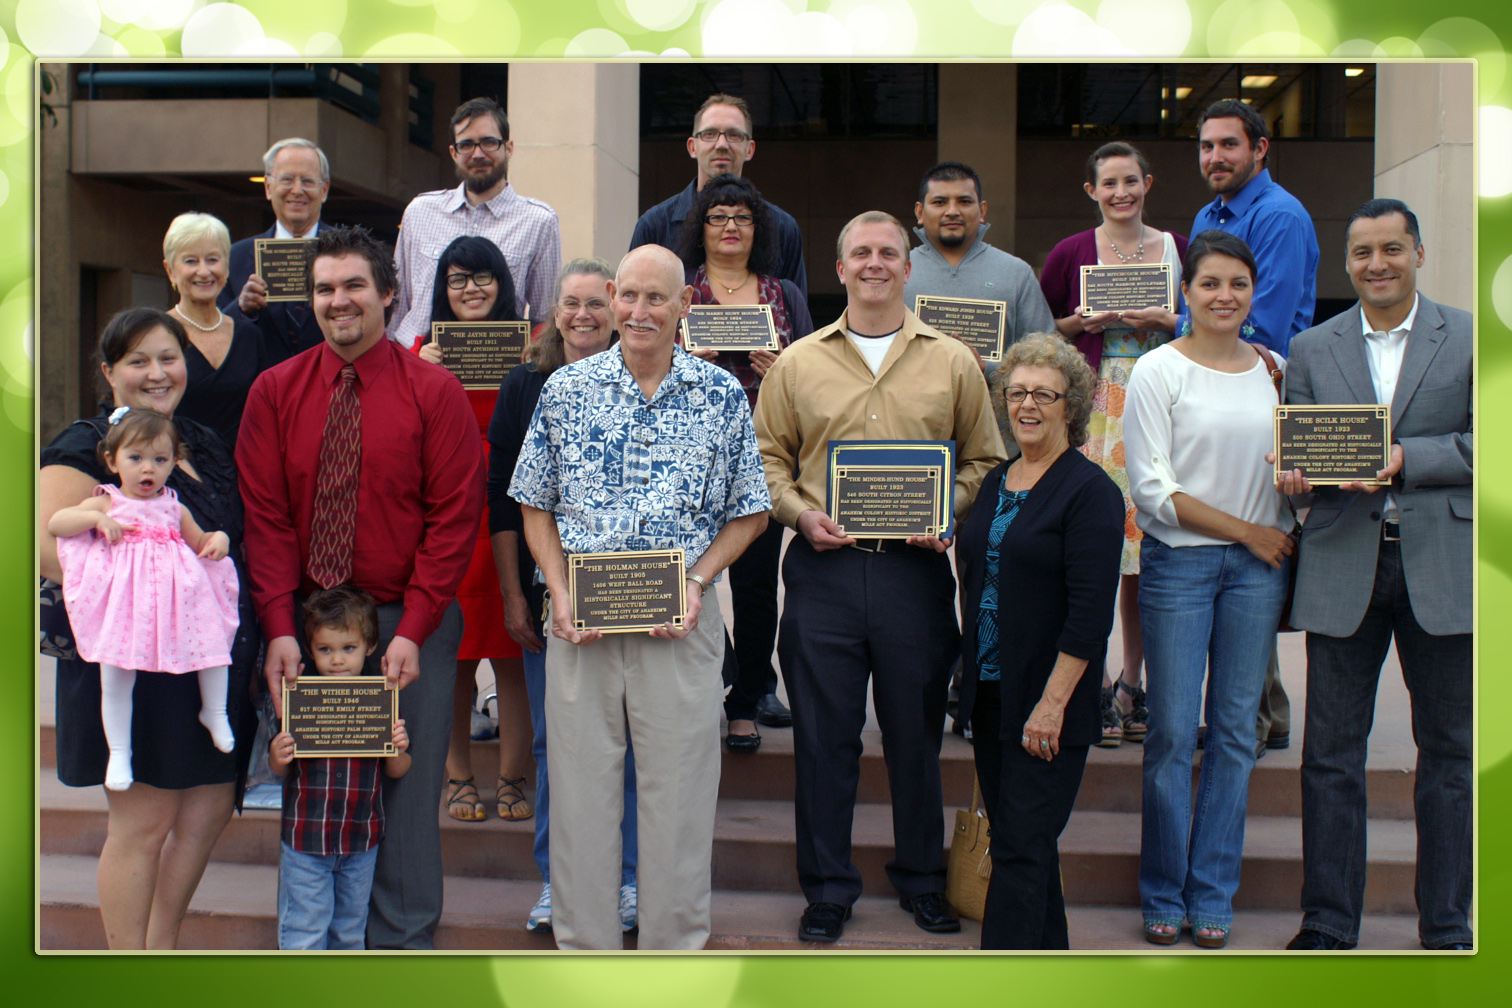 Group photo with the onwers holding their plaques for the Mills Act Participating Properties from 2011